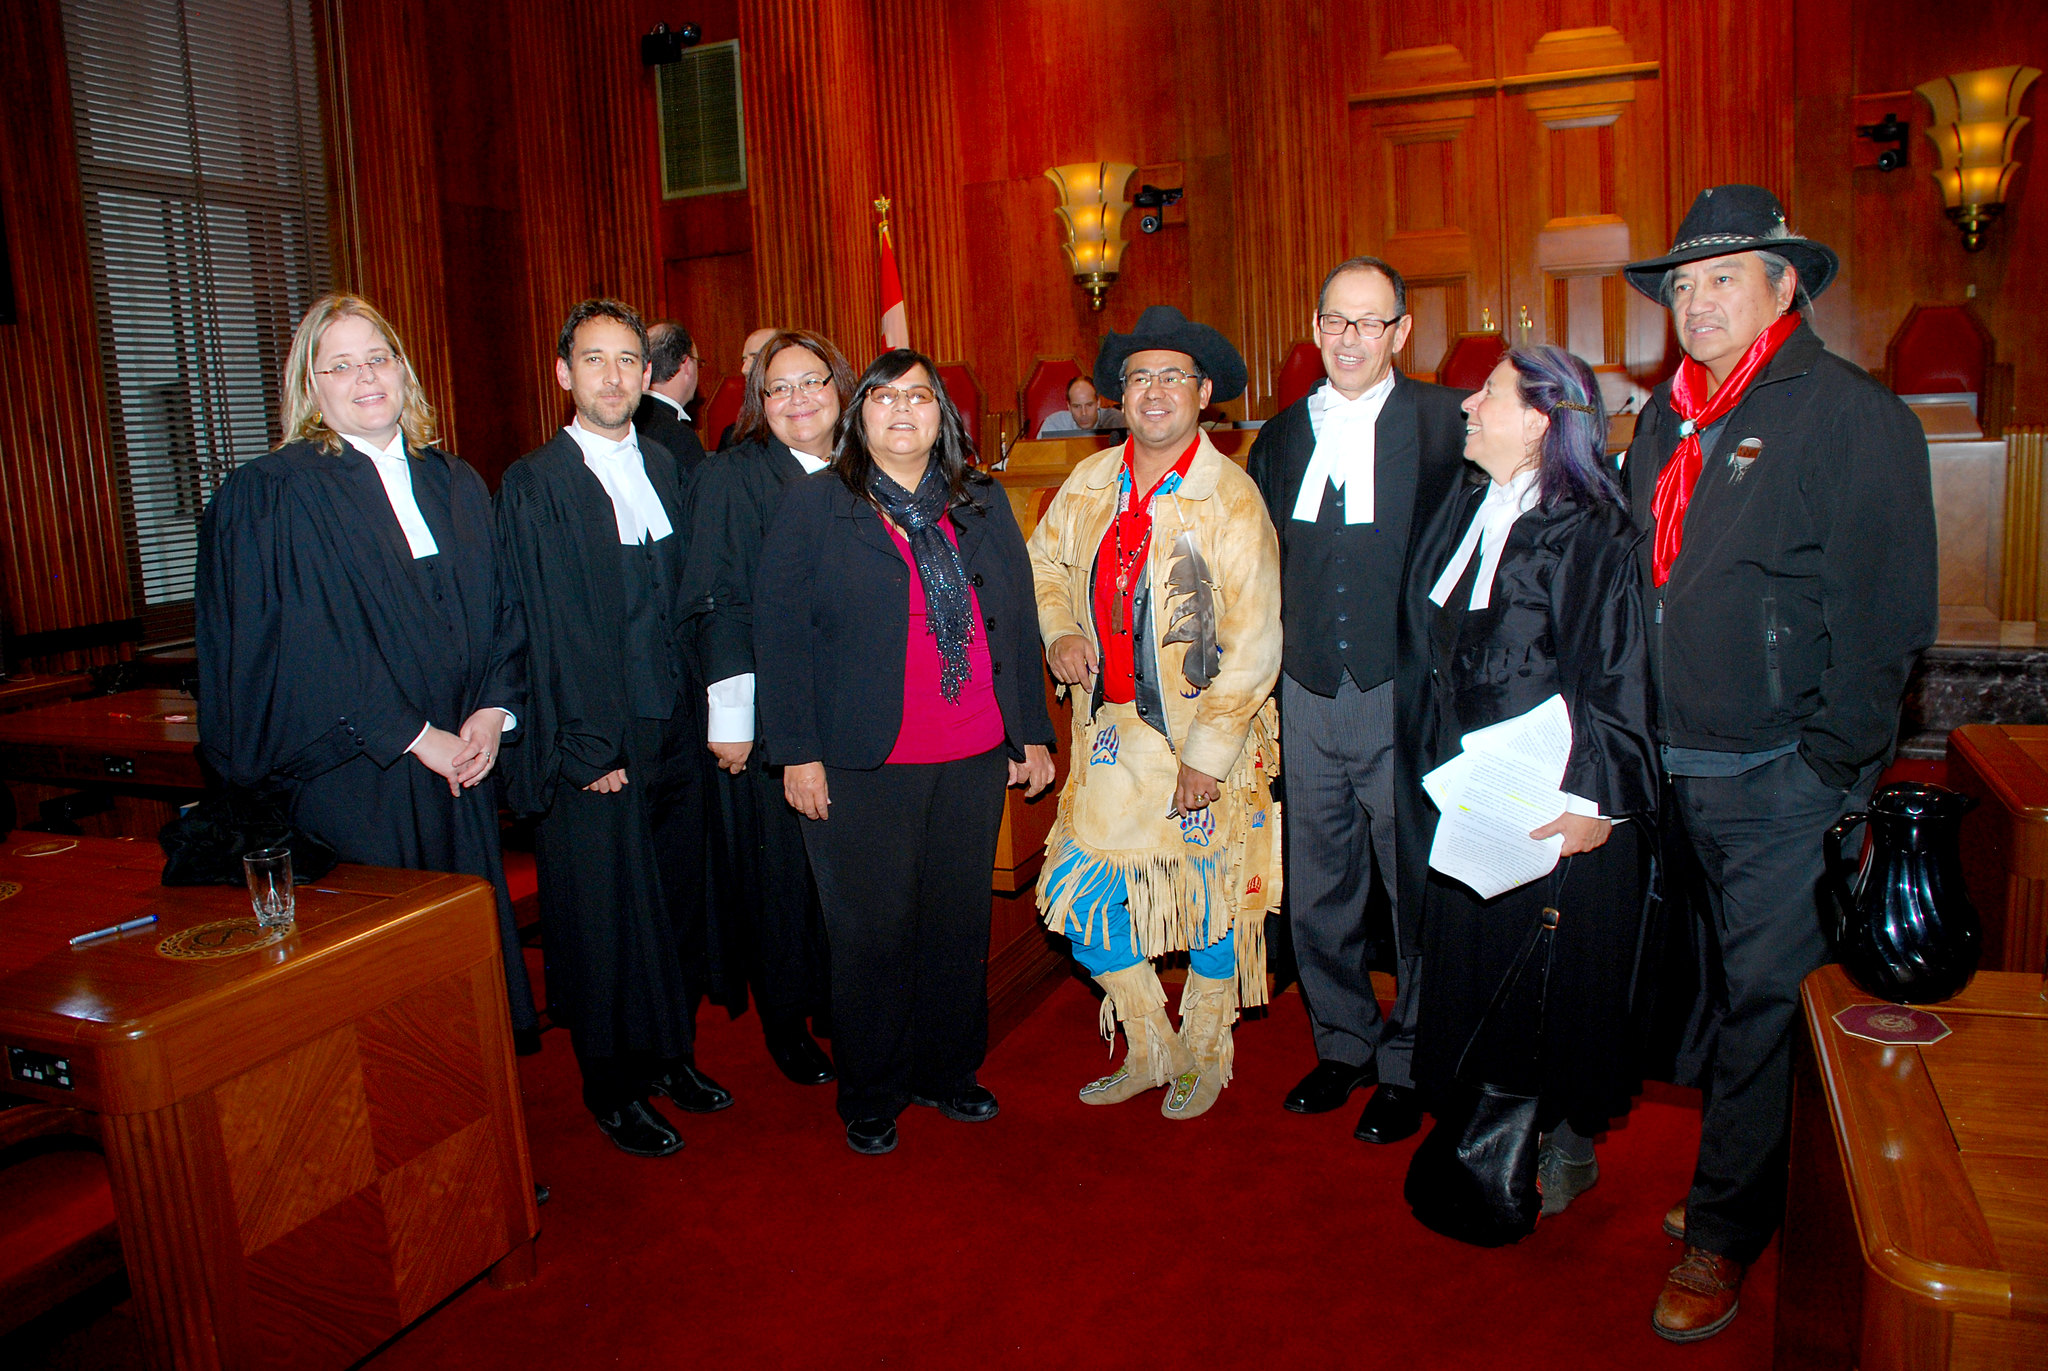 Tsilhqot'in and counsel with legal team representing the Secwepemc, Okanagan and Union of BC Indian Chiefs, Intervenors before the Supreme Court on Nov. 7, 2013. . Photo credits to: Thompson Rivers University (CC BY-NC-SA 2.0) [152]